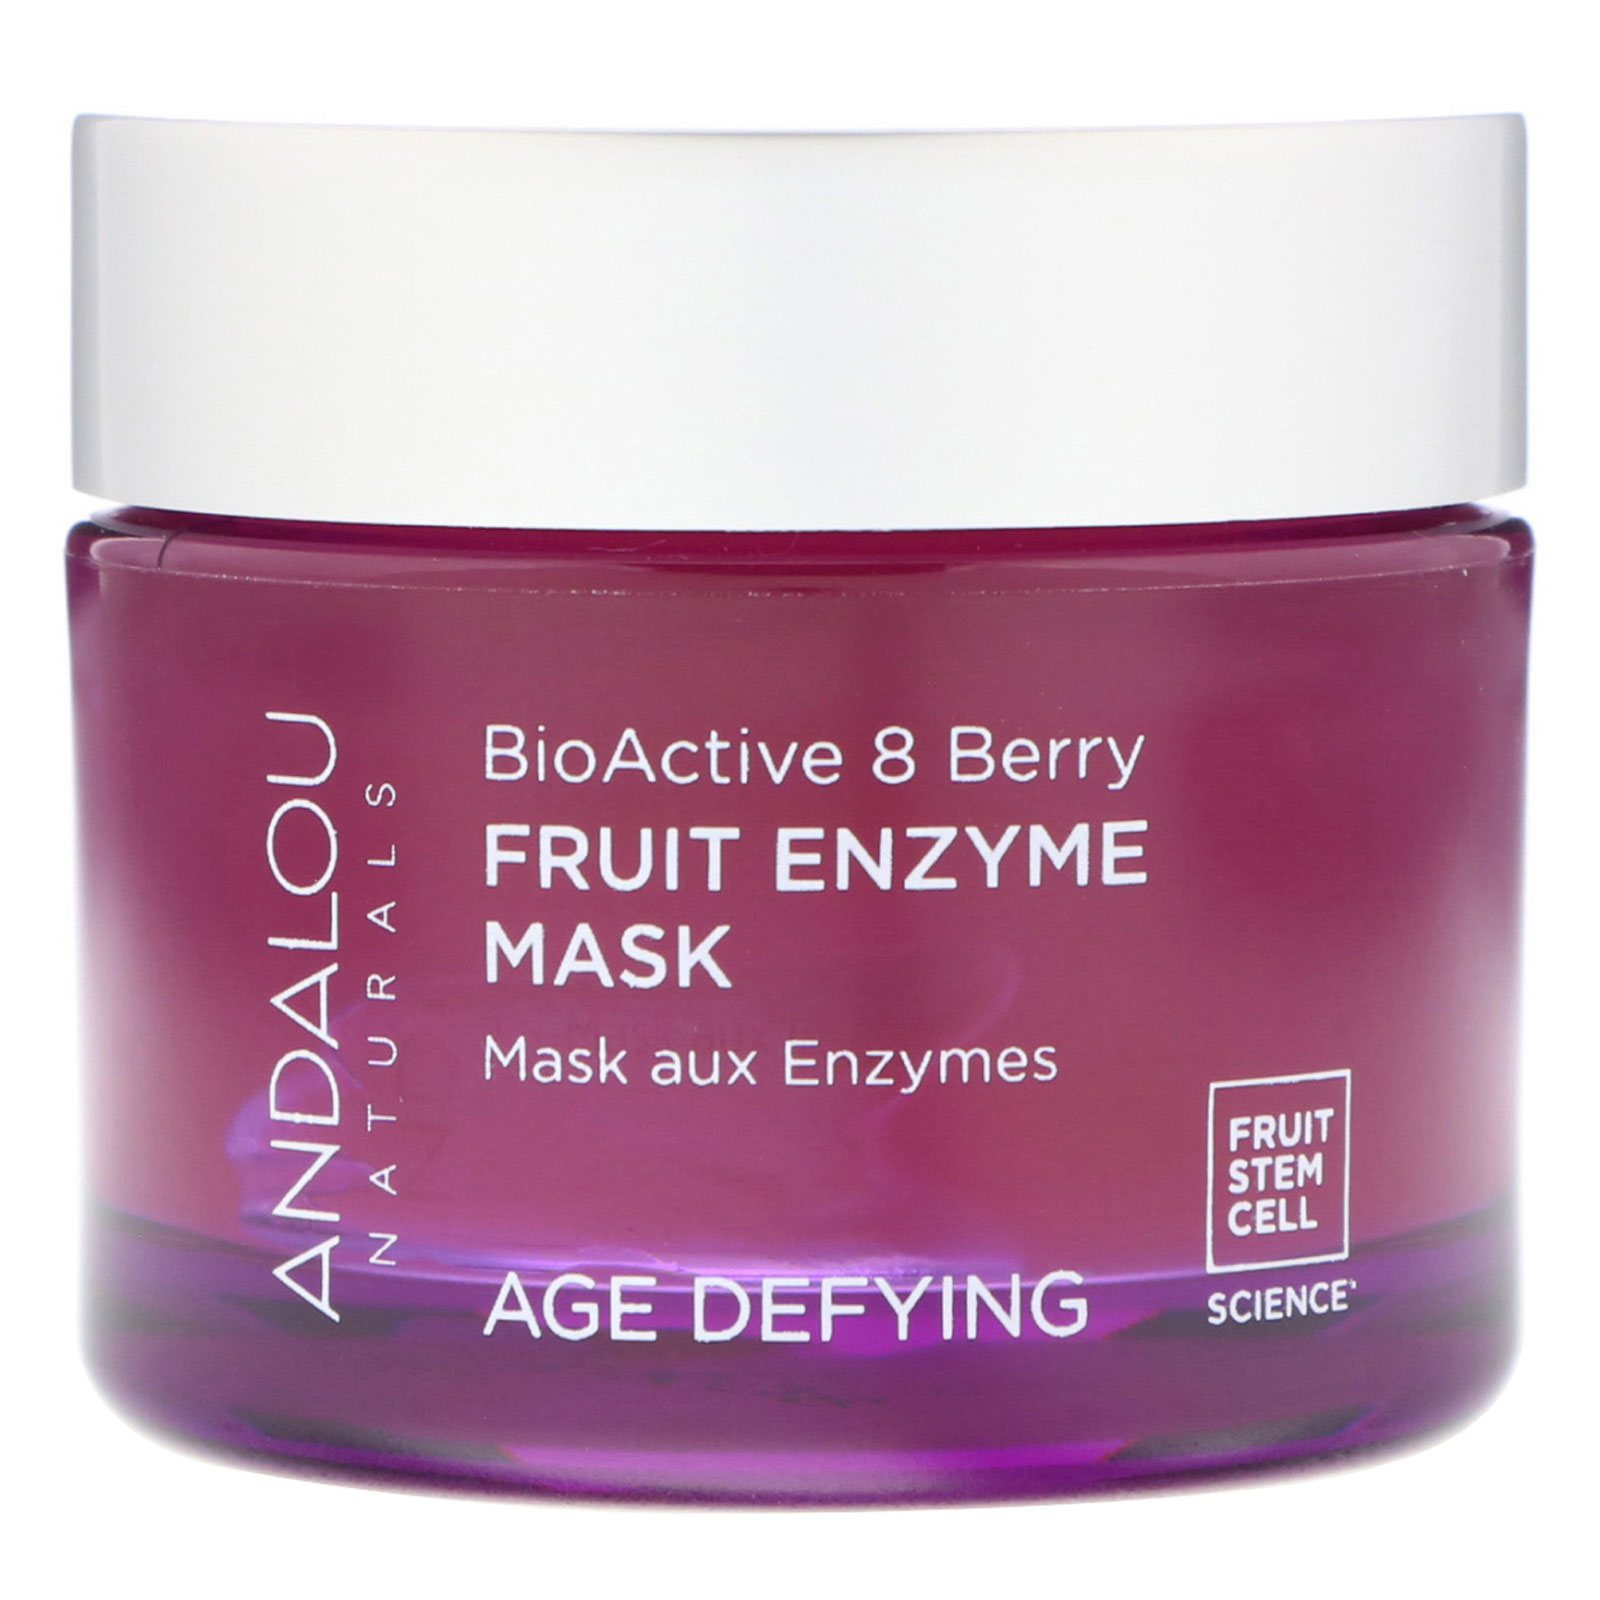 Andalou Bioactive Berry Fruit Enzyme Mask